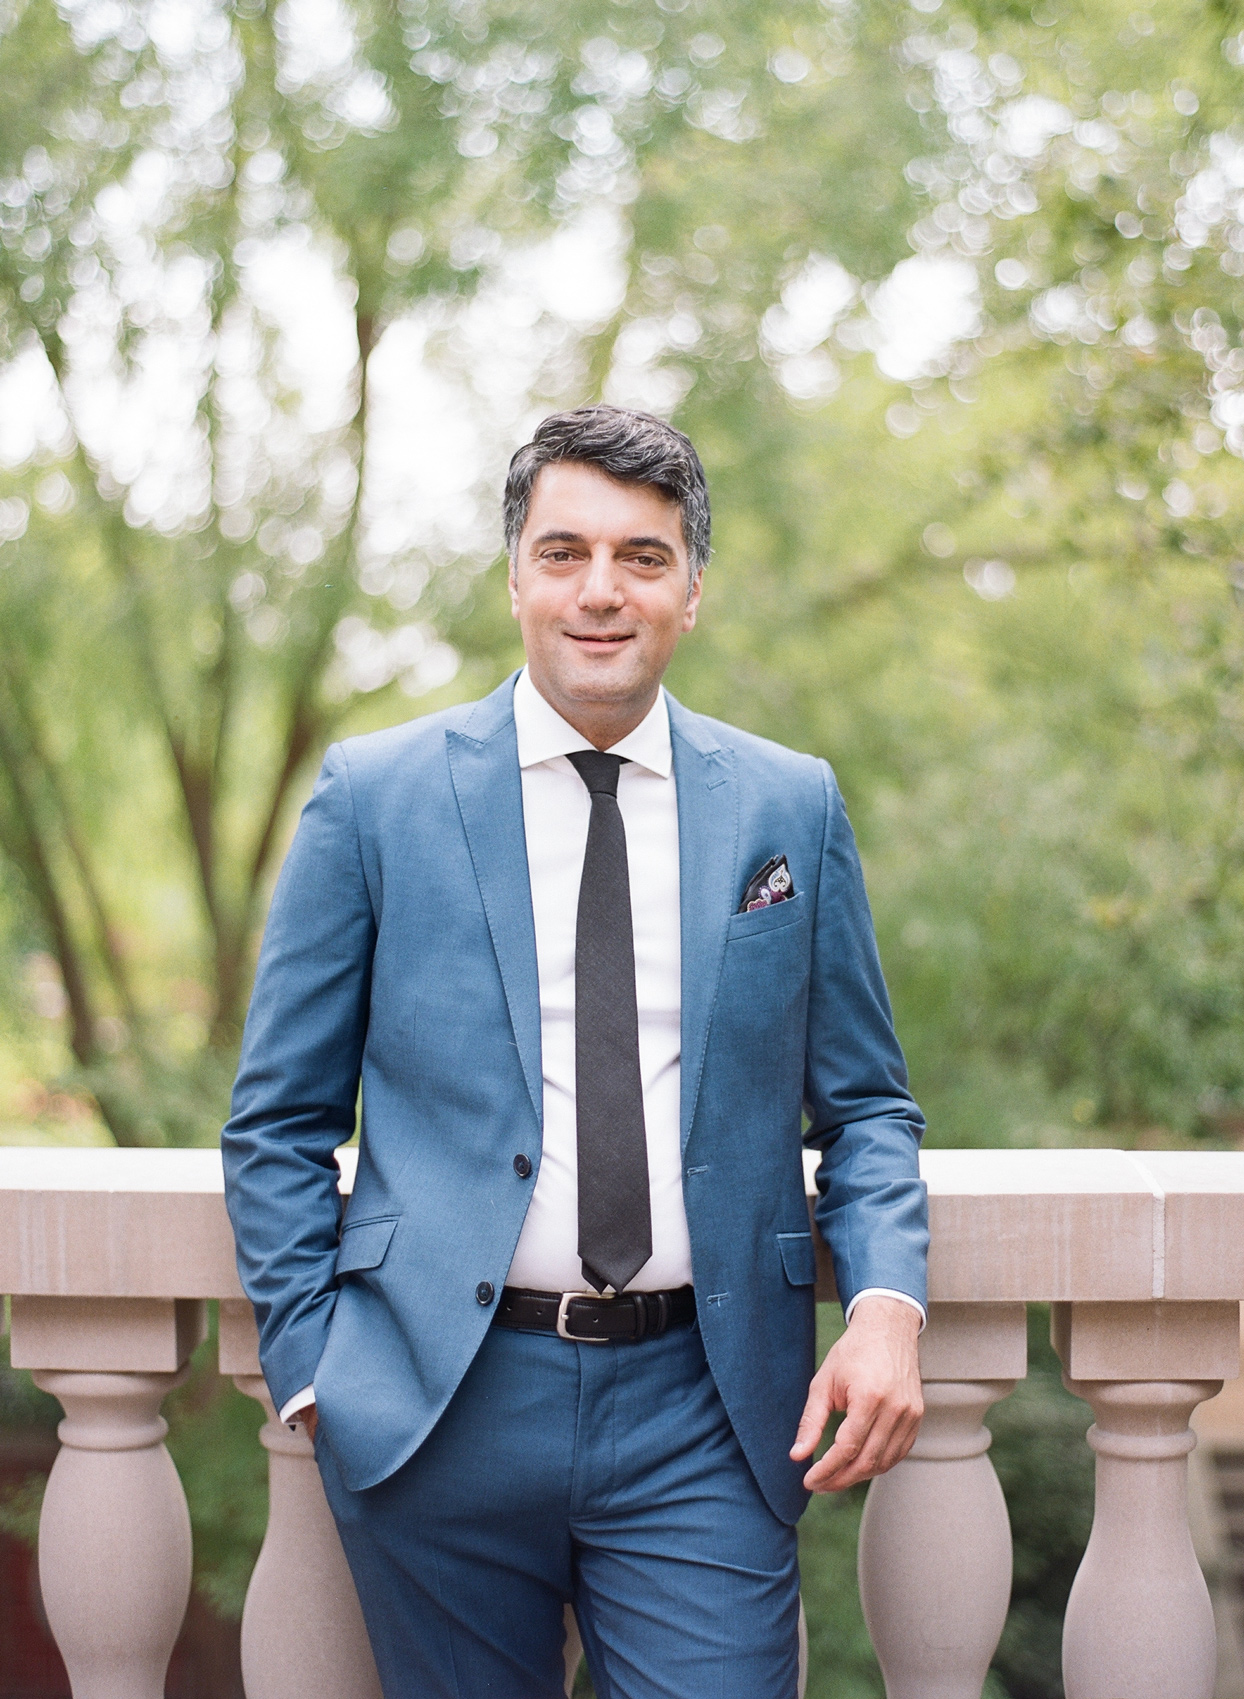 groom wearing blue suit leaning against railing